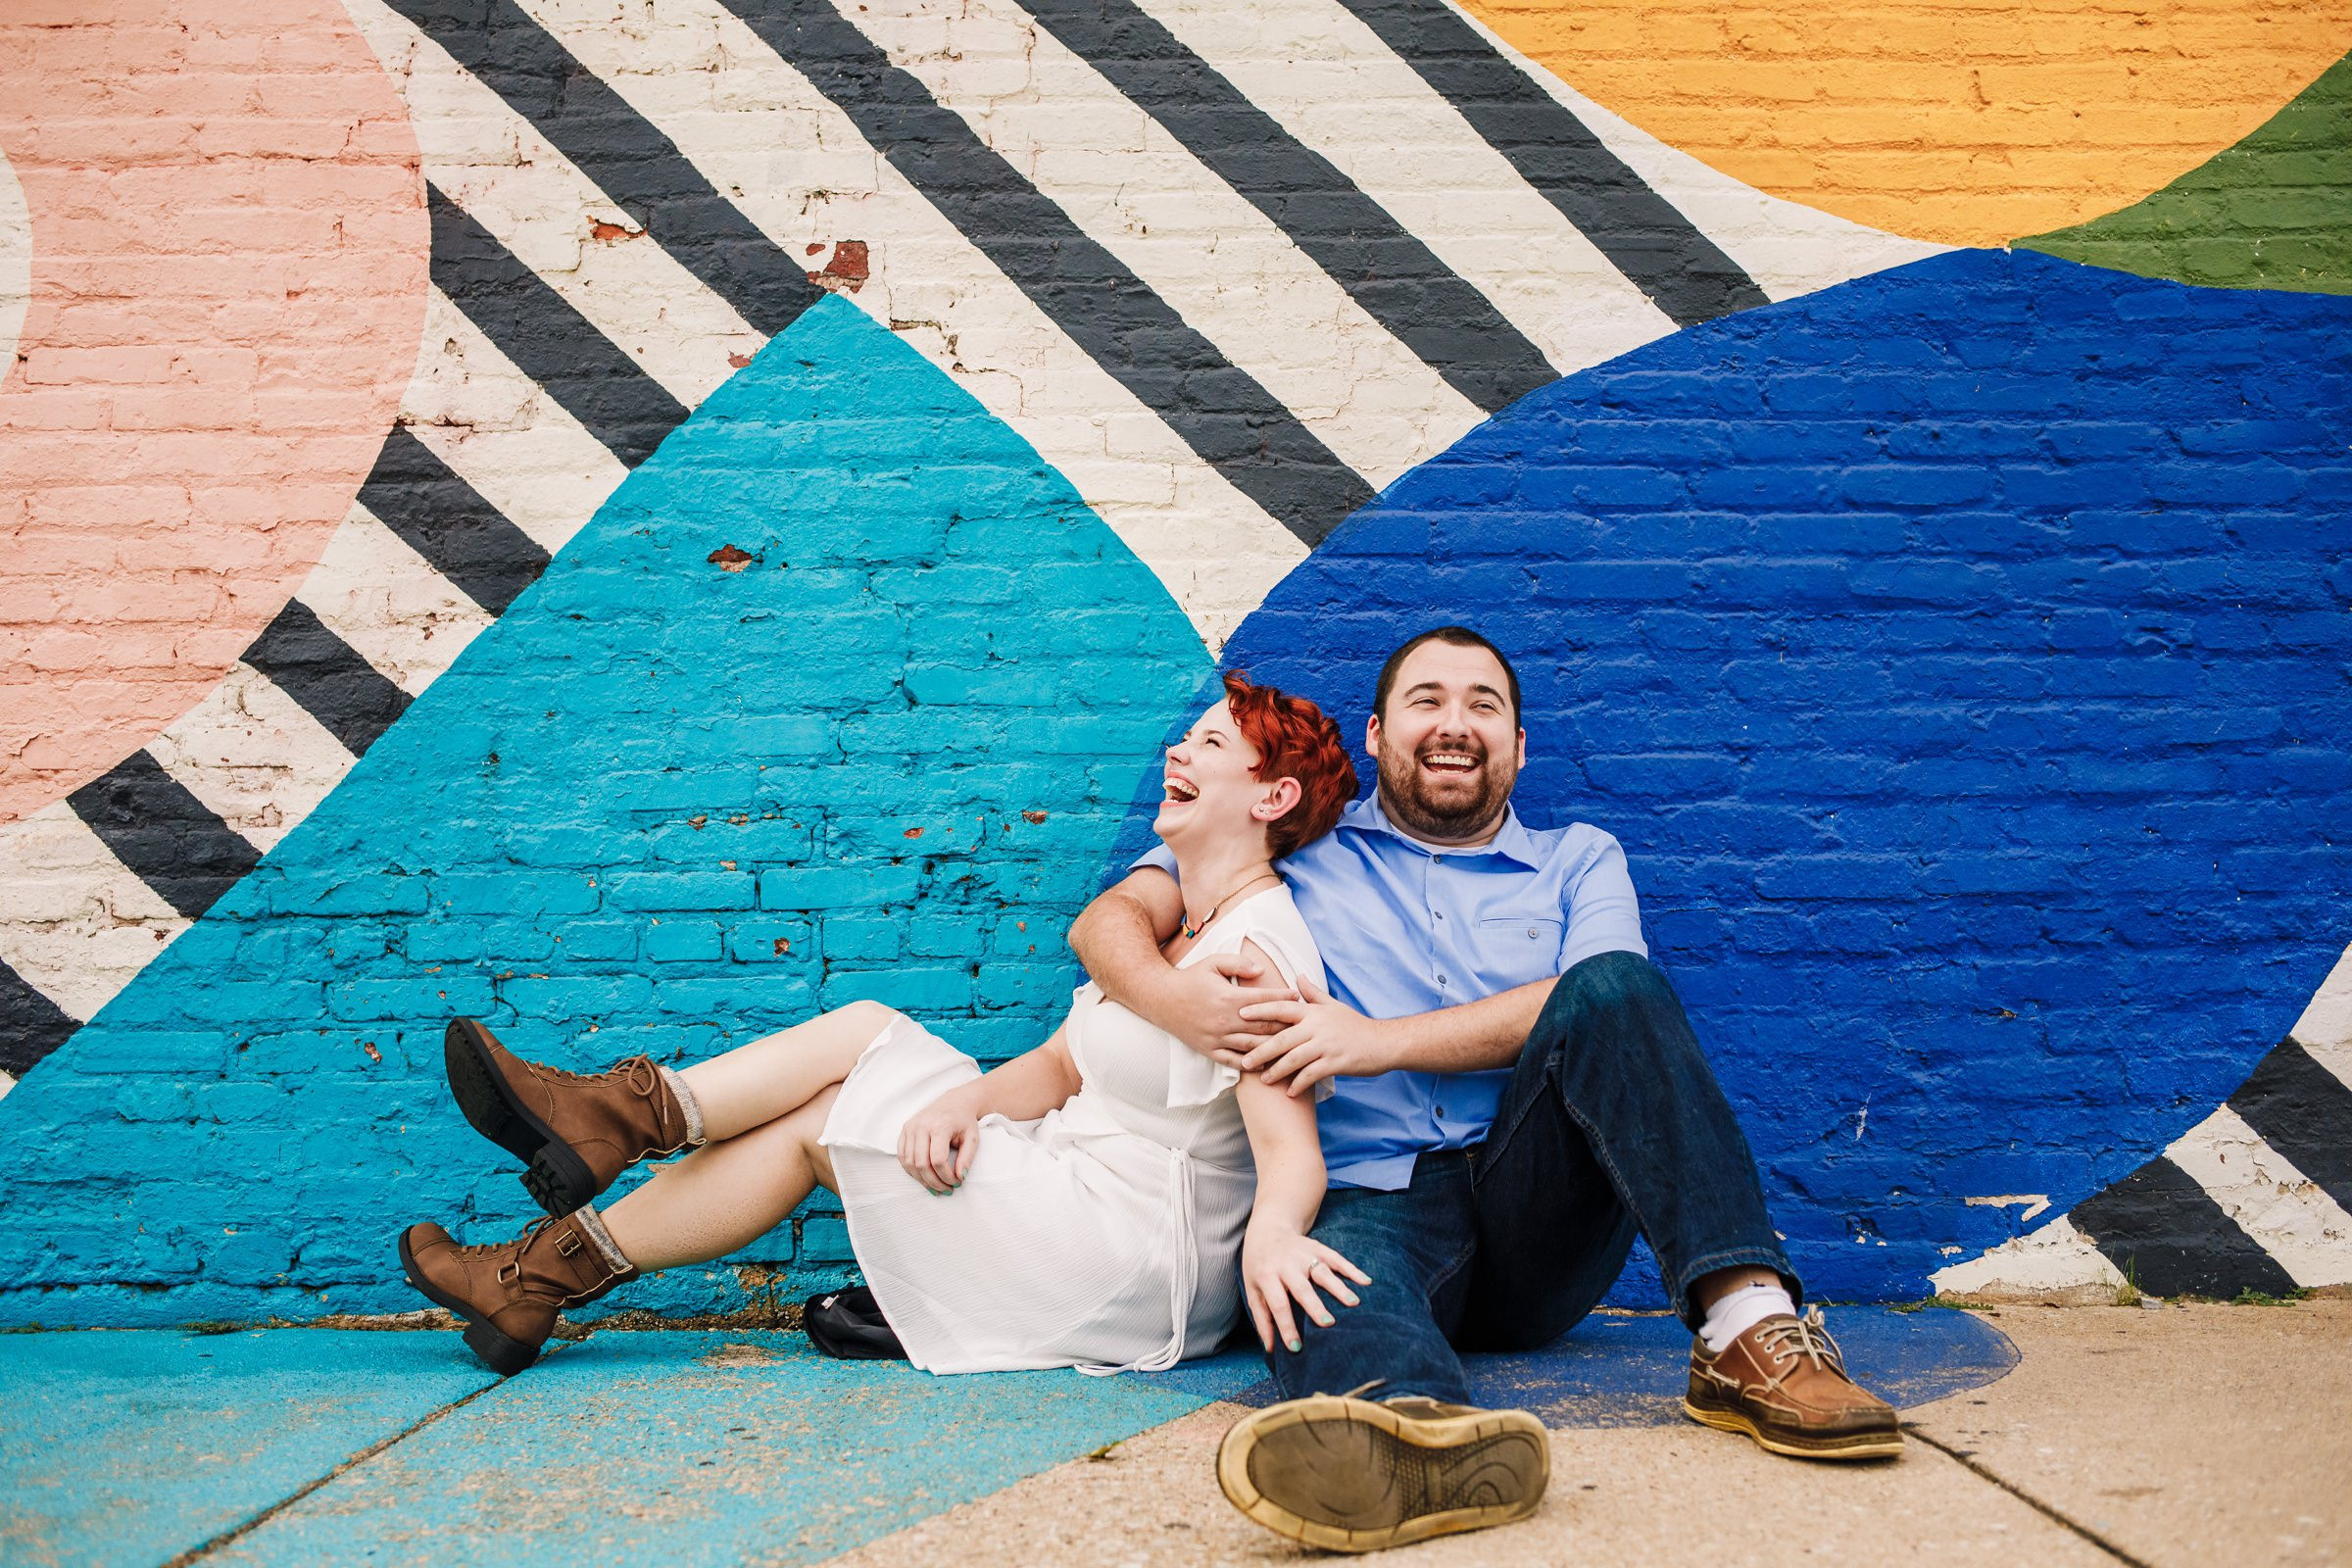 Laughing couple against colorful mural - photo by Photography by Brea